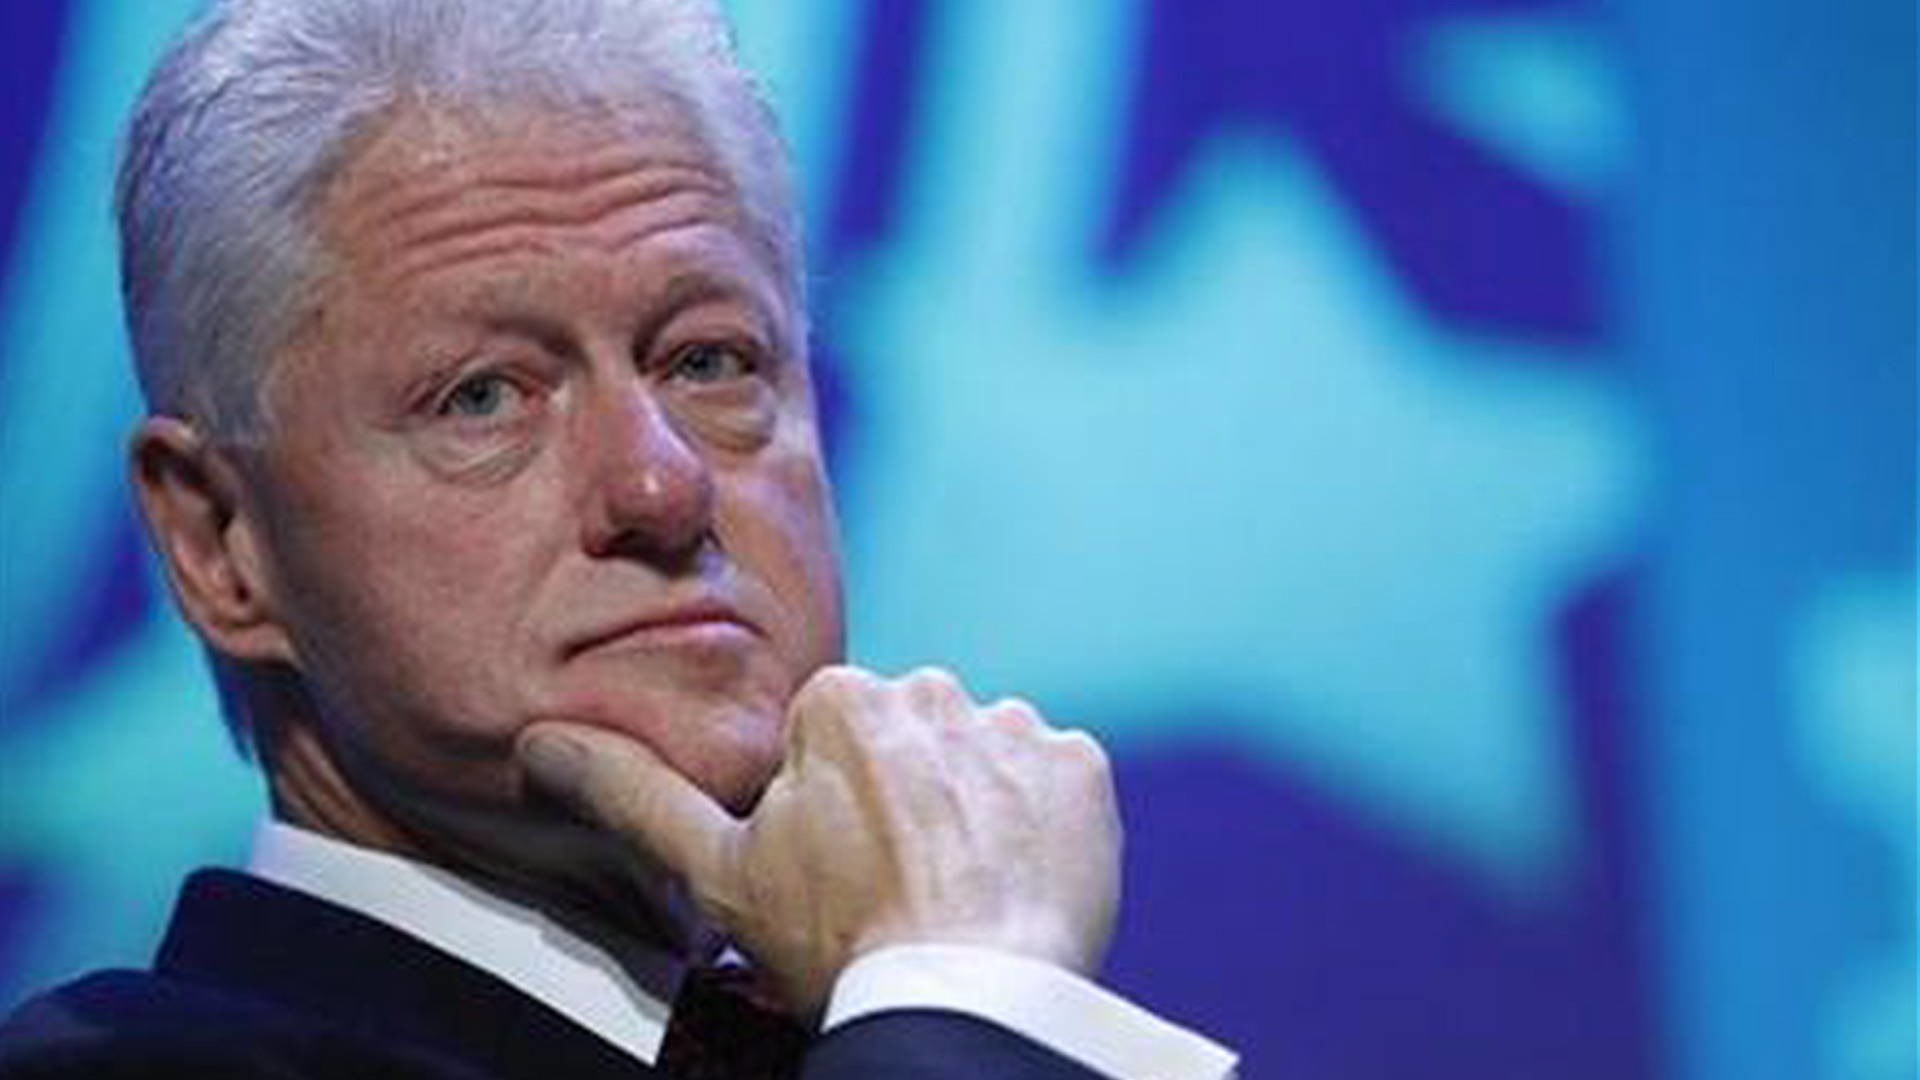 Is It Fair to Raise Rape & Harassment Allegations Against Bill Clinton in  Hillary's 2016 Campaign? | Democracy Now!